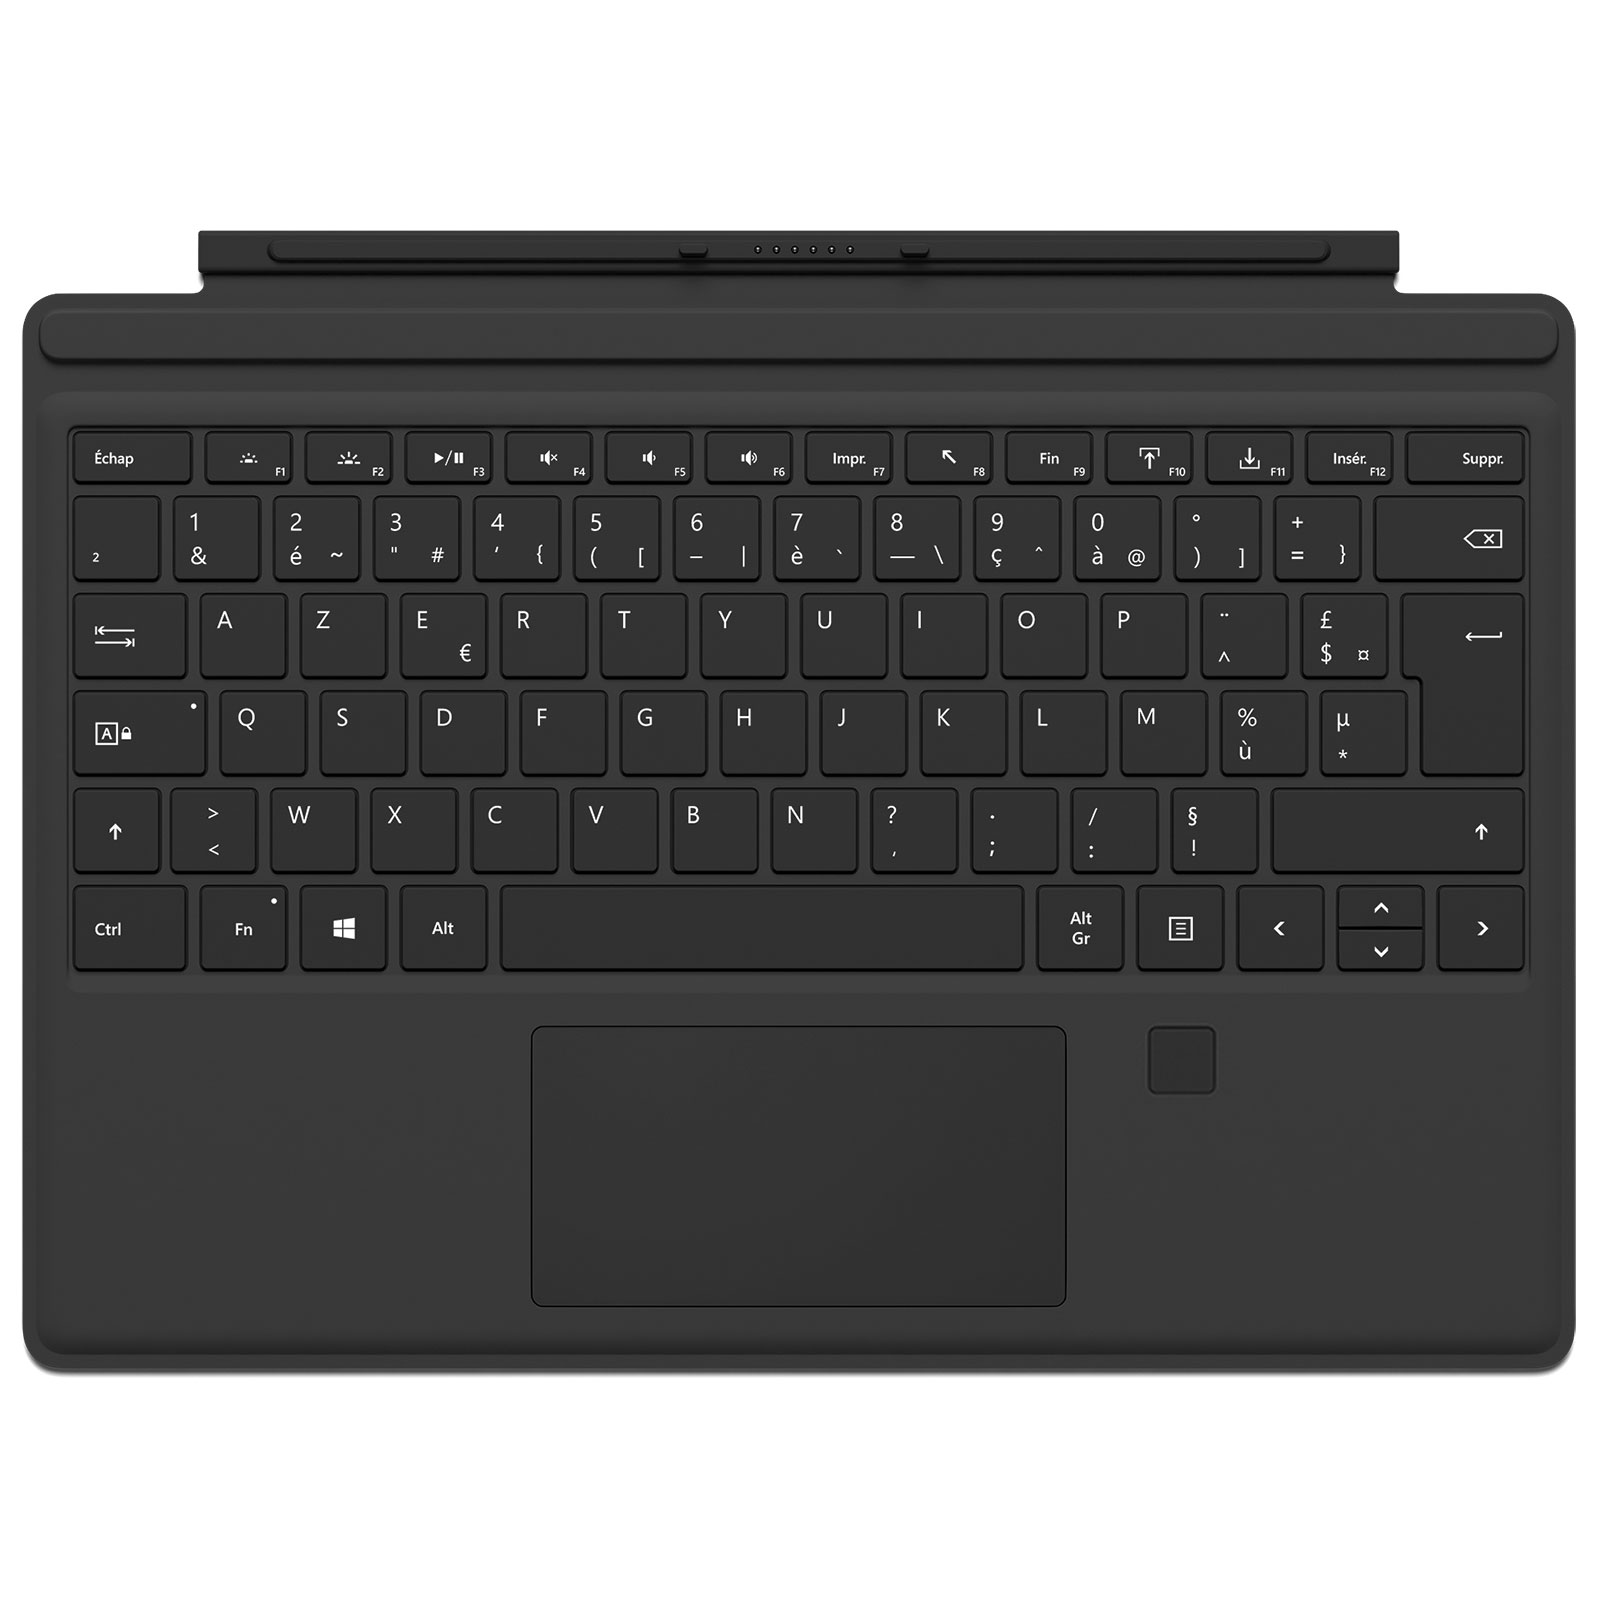 microsoft type cover surface pro 4 touch id noir accessoires pc portable microsoft sur. Black Bedroom Furniture Sets. Home Design Ideas